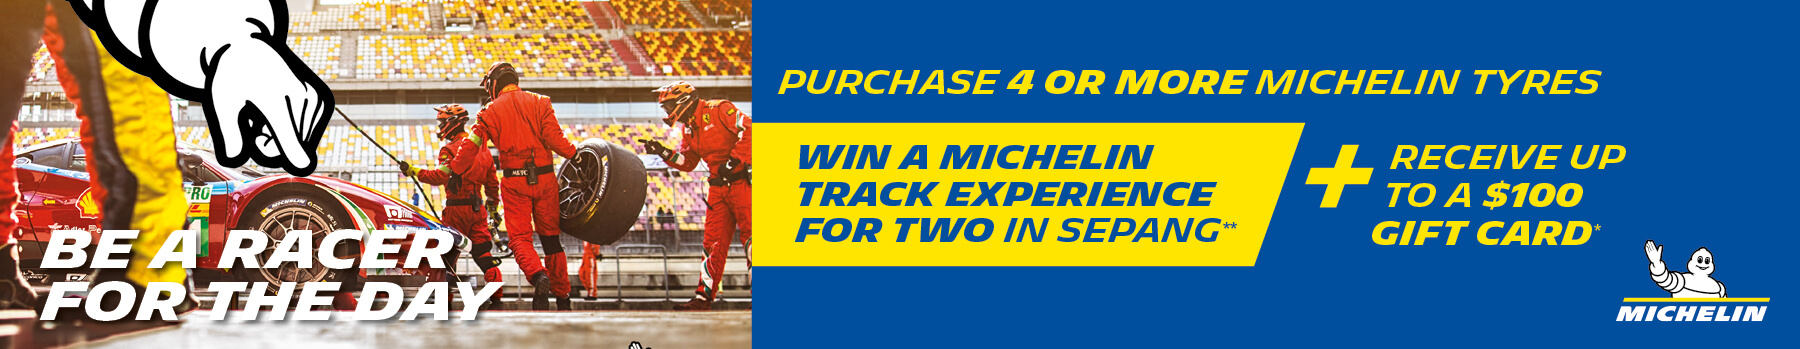 Purchase 4 or more michelin tyres to win two big prizes*